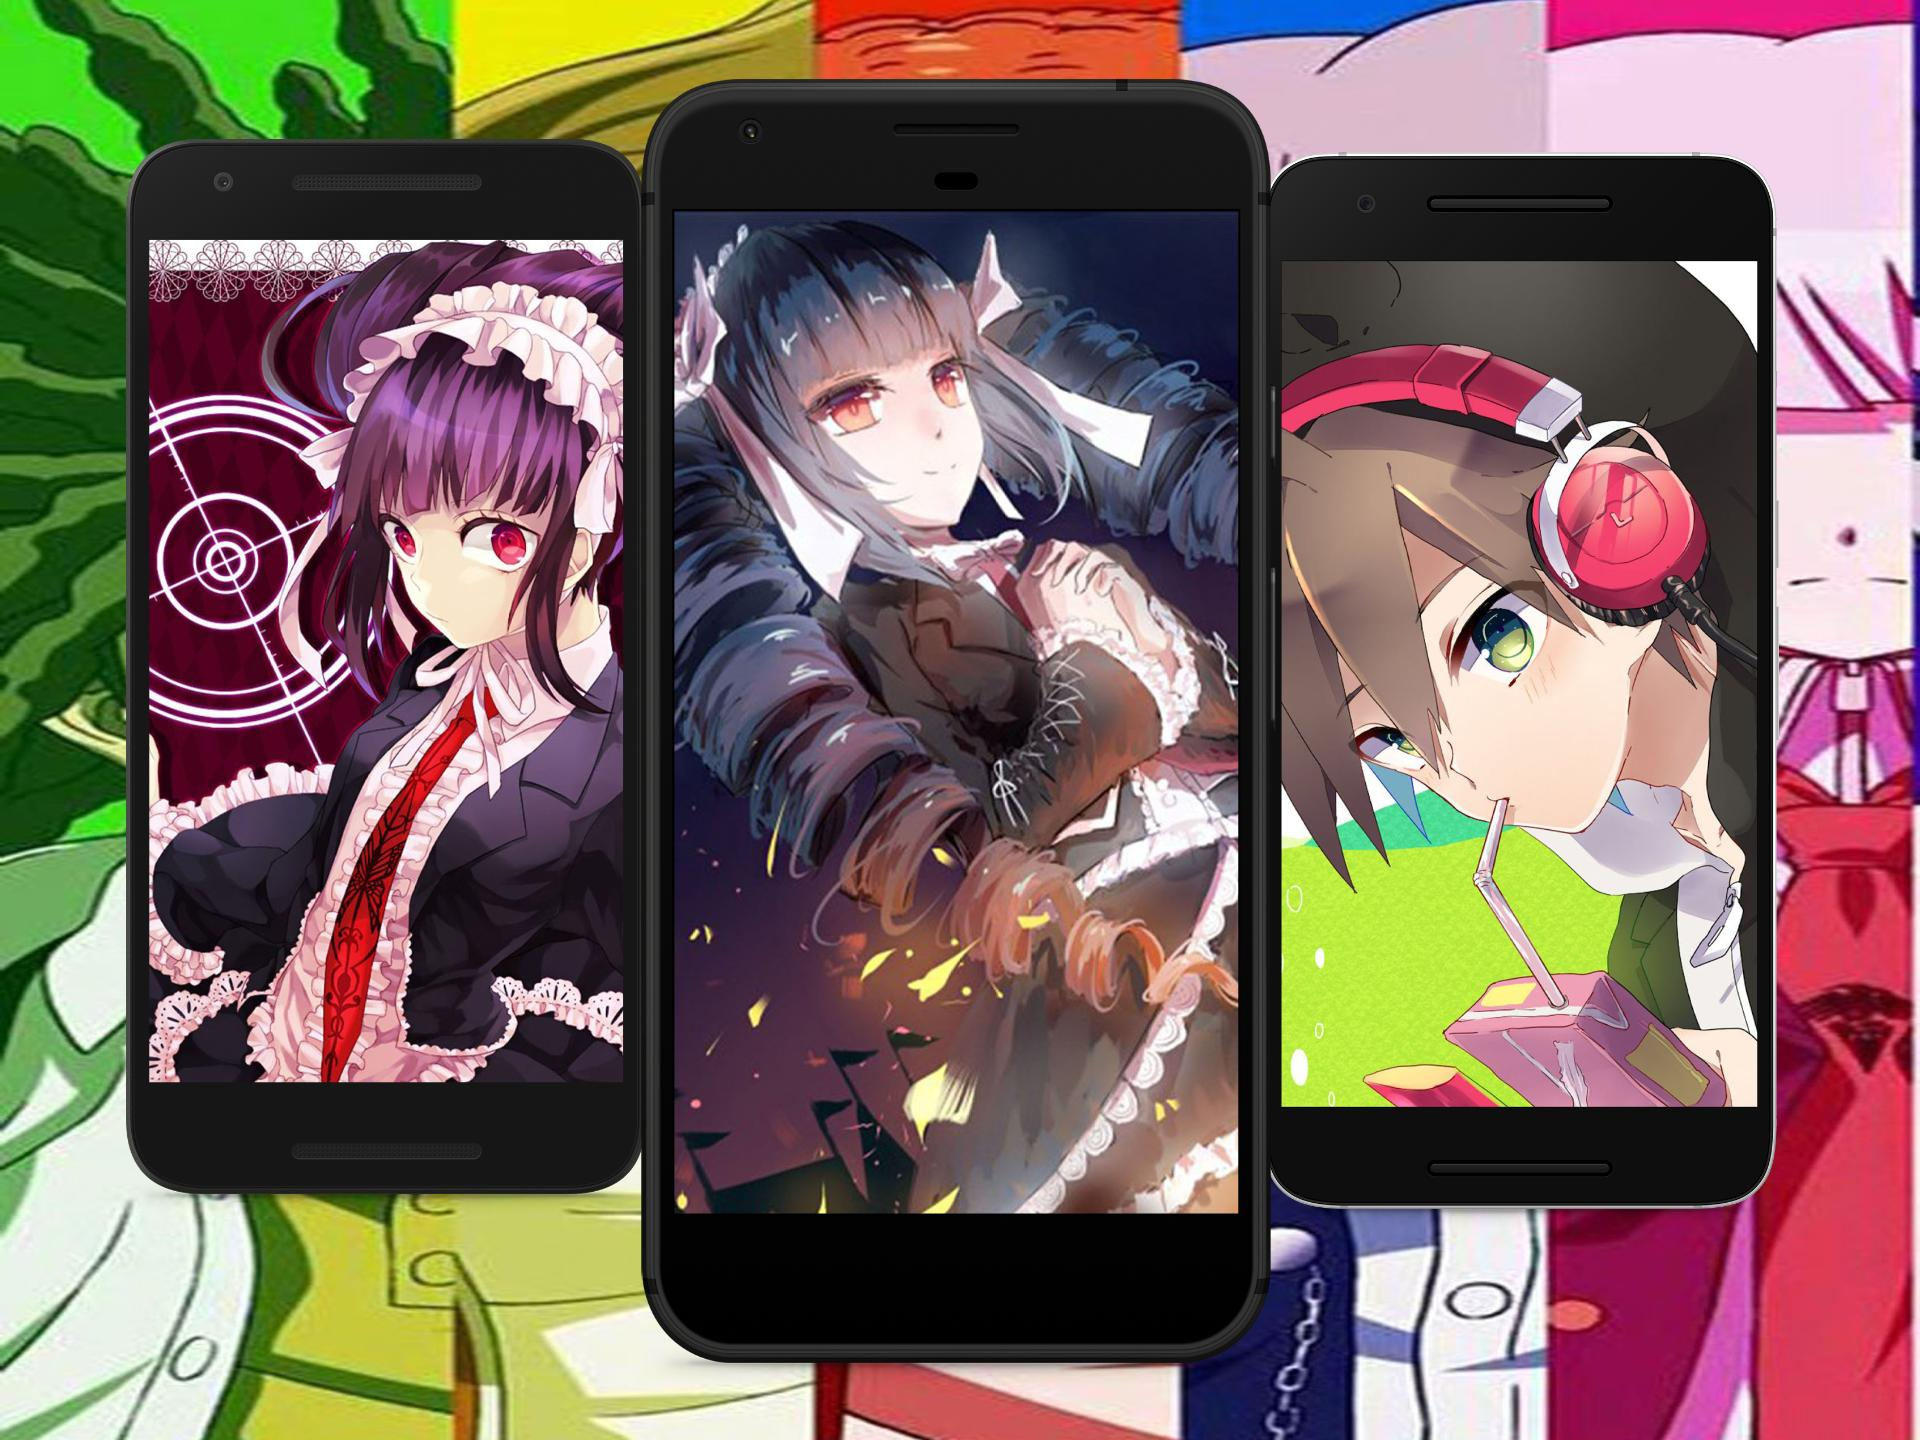 Anime Danganronpa Wallpapers For Android Apk Download